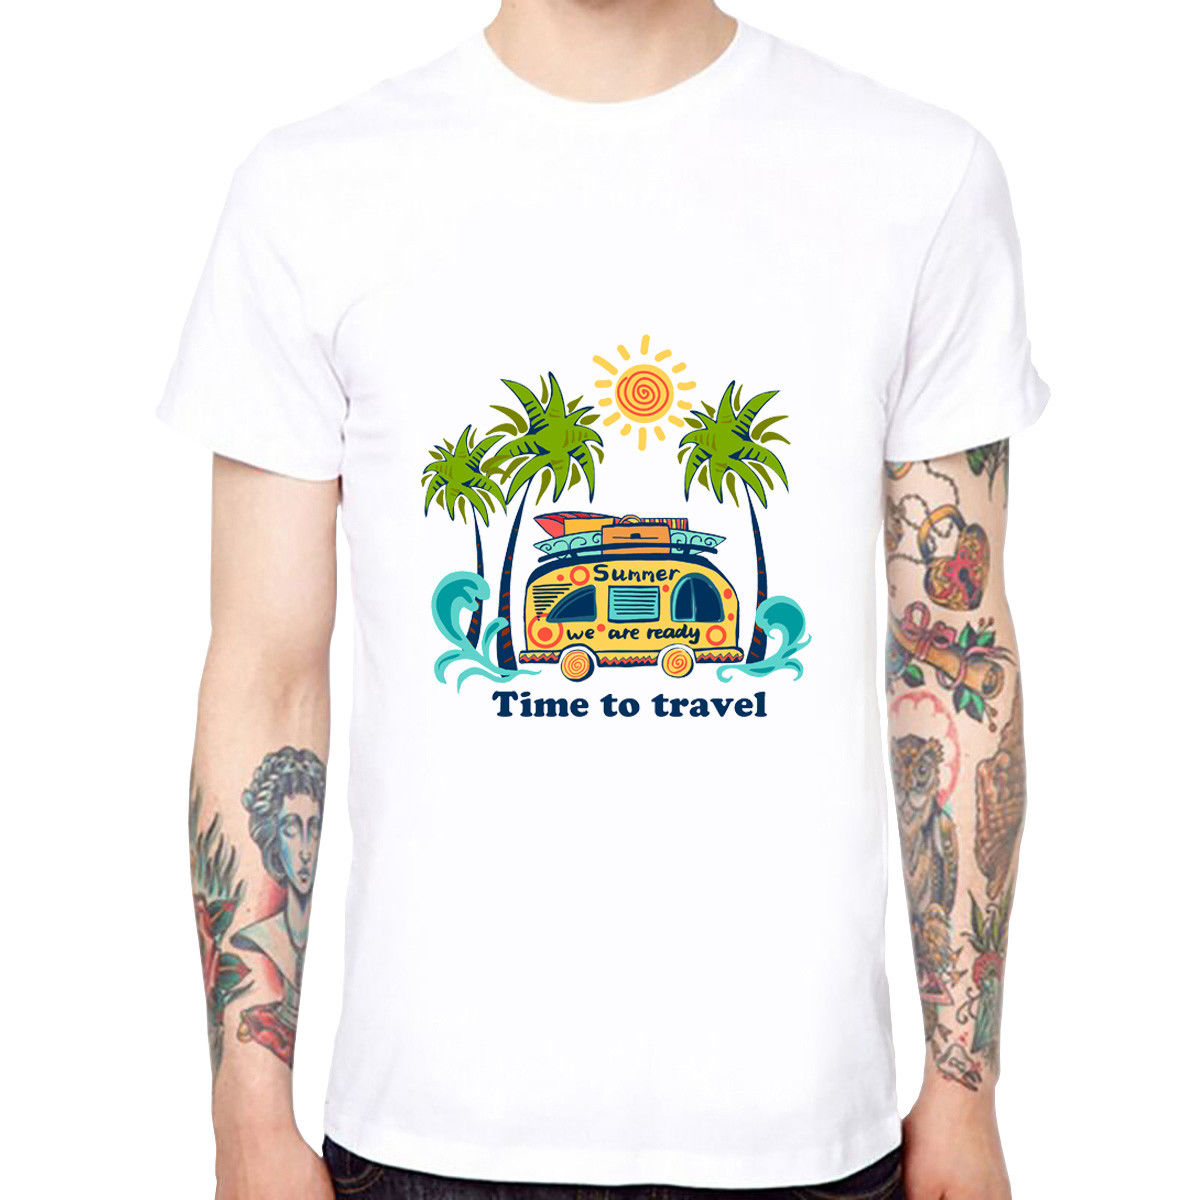 Time To Travel Mens Cotton Soft Funny Cool T-shirts Short Sleeve Tops Tee New Arrival Male Tees Casual Boy Tops Discounts